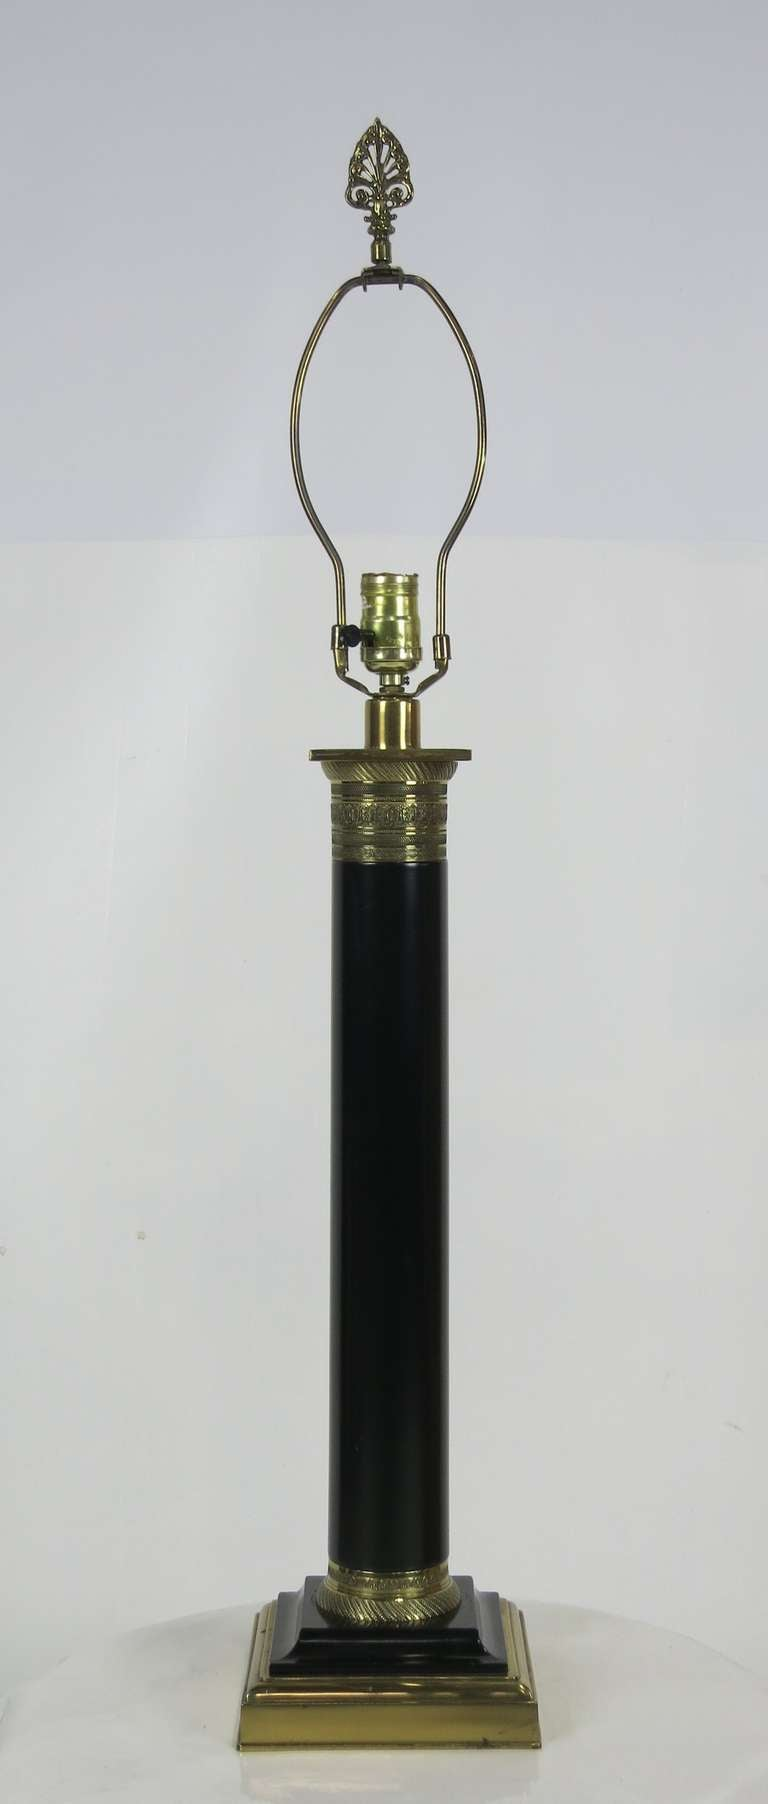 Ebony and Brass Column Lamp by Paul Hanson 2